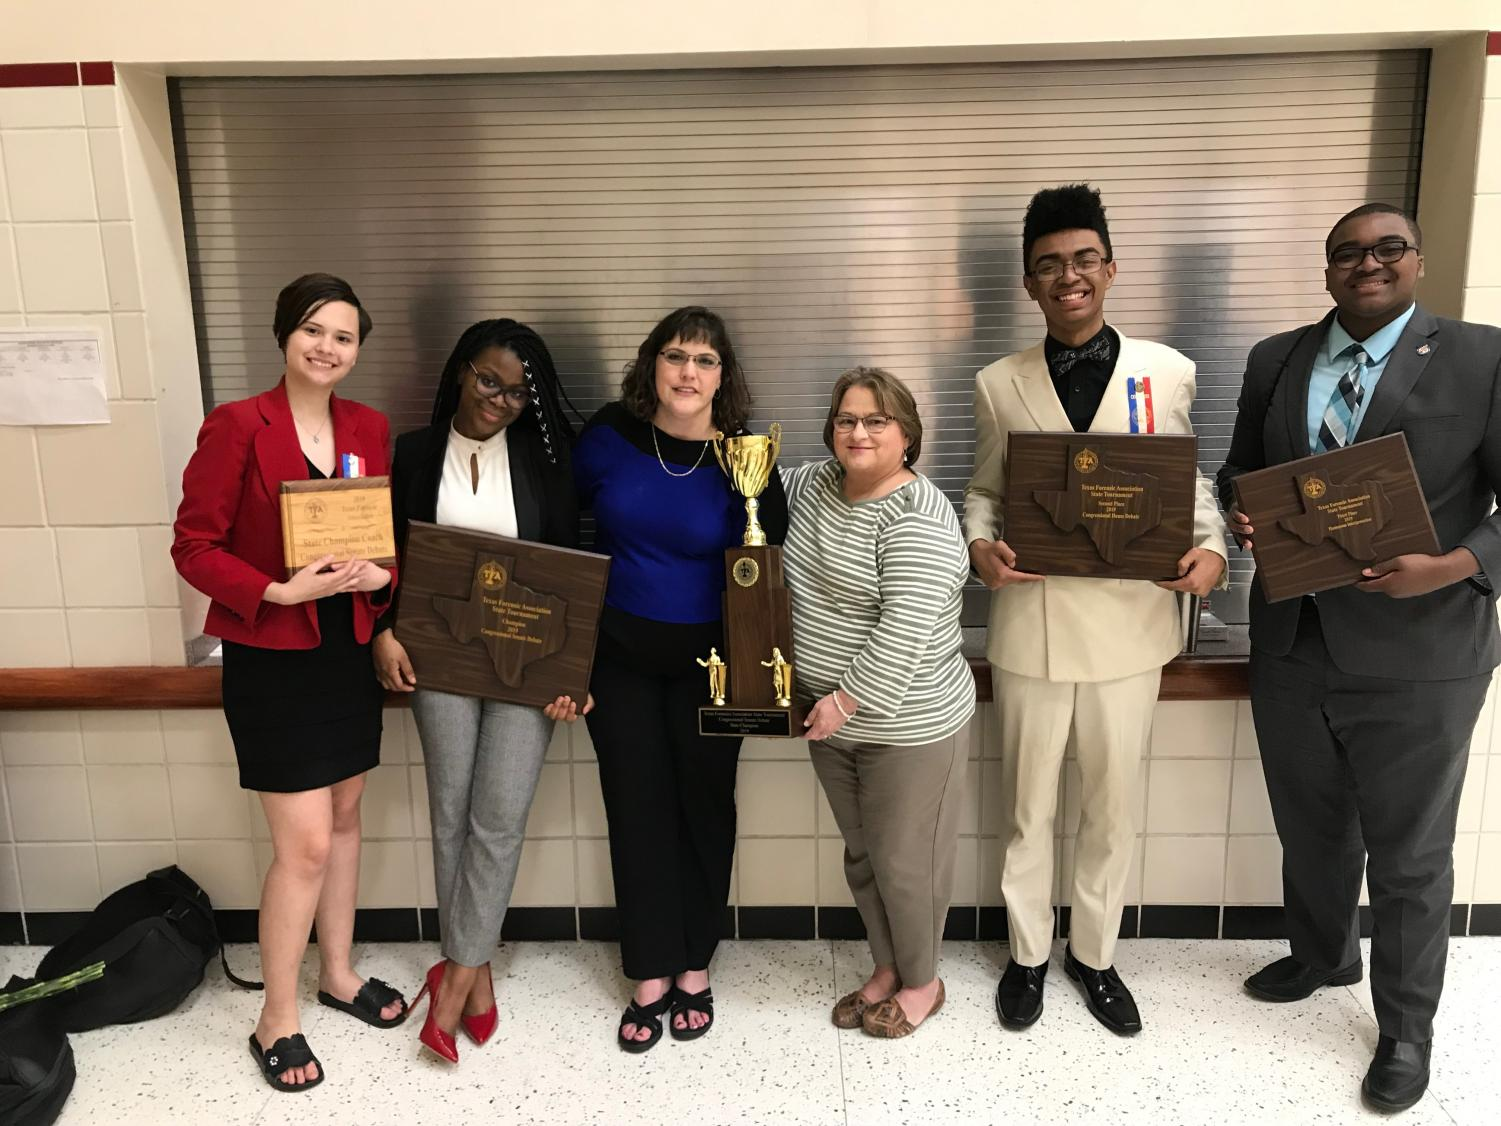 Winning several top awards at the Texas Forensic Association State Tournament, junior Skylar Dixon-Englert, junior Ayo Adereti, Coach Angie Richard, Coach Debby Carpenter, senior Jeremiah Williams and senior Marc Wynne display the championship hardware.